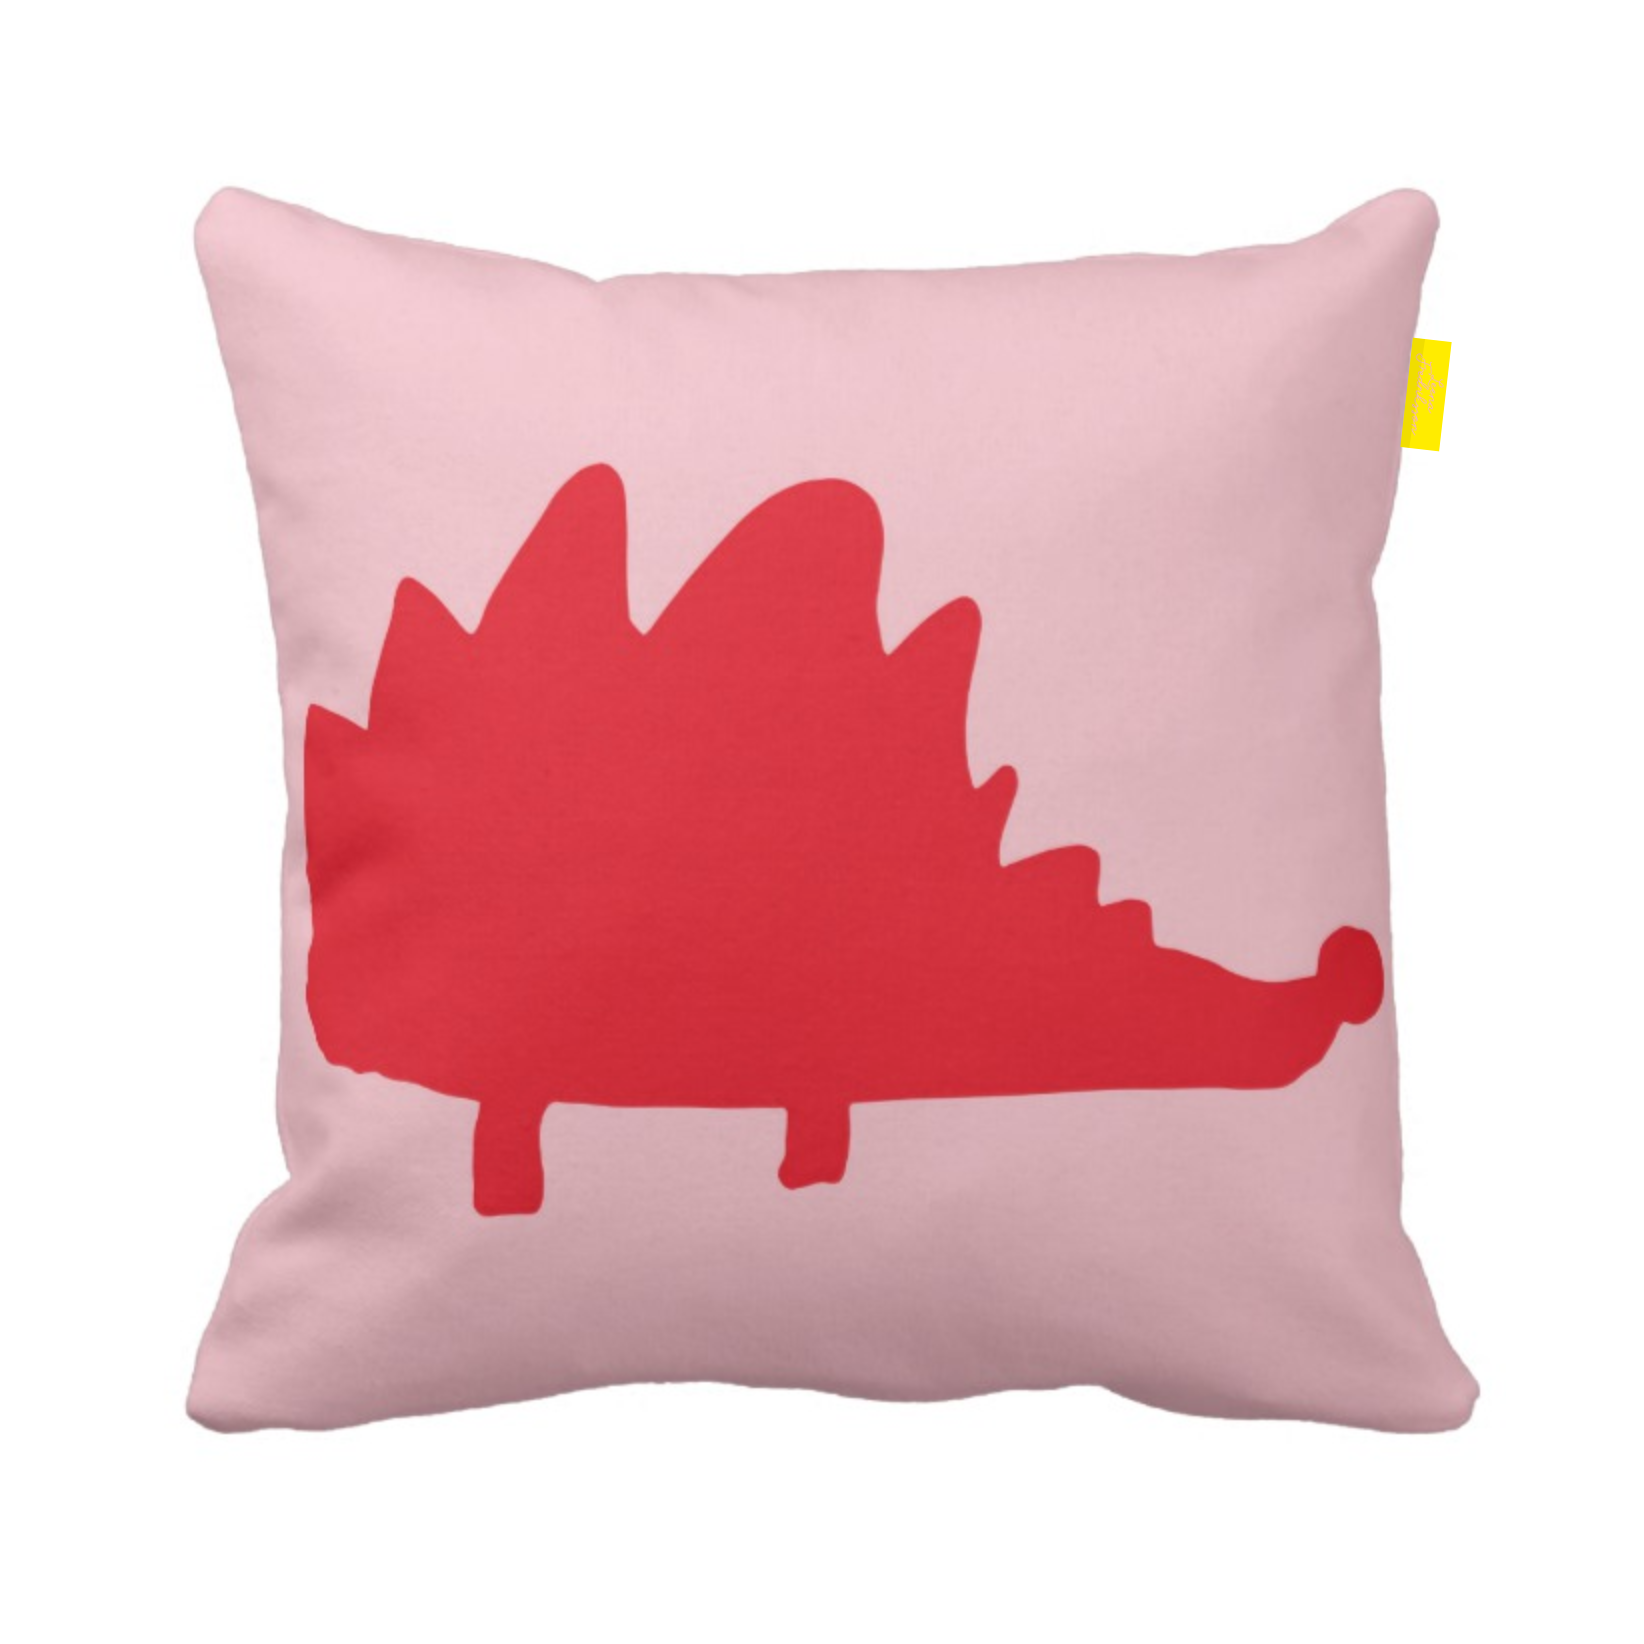 ISLET hedgehog,  pillow, red